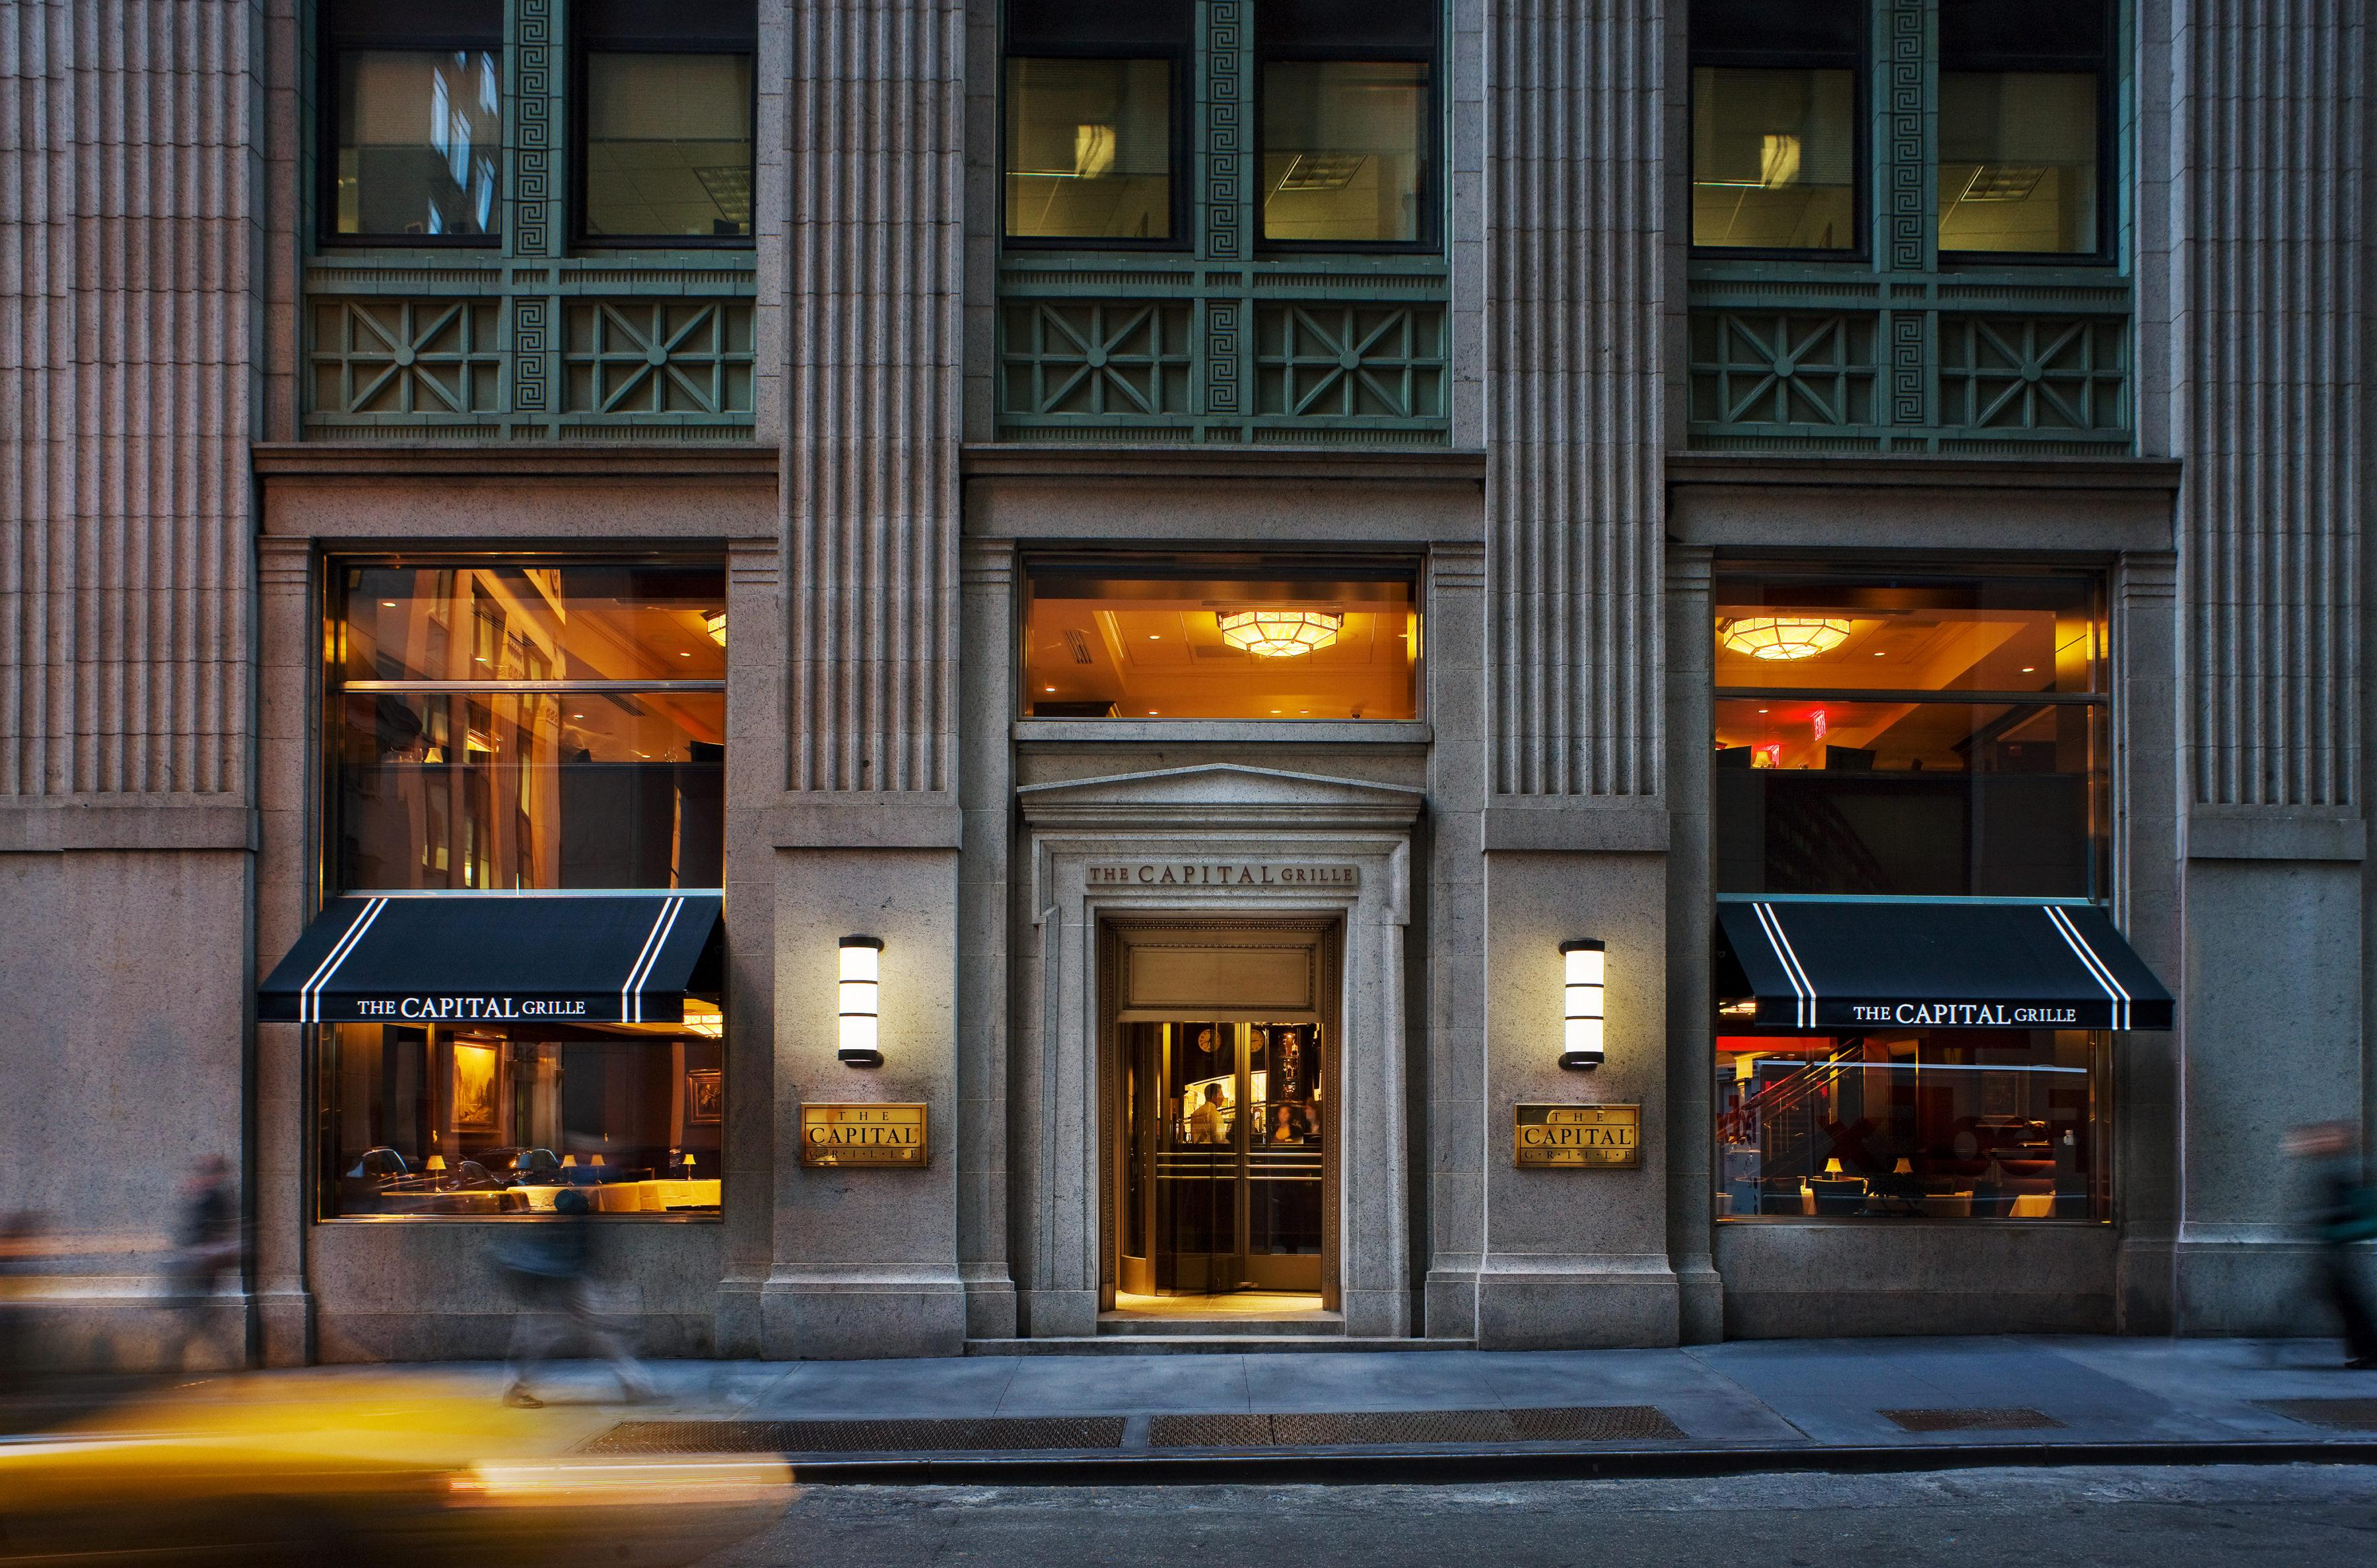 the capital grille wall street